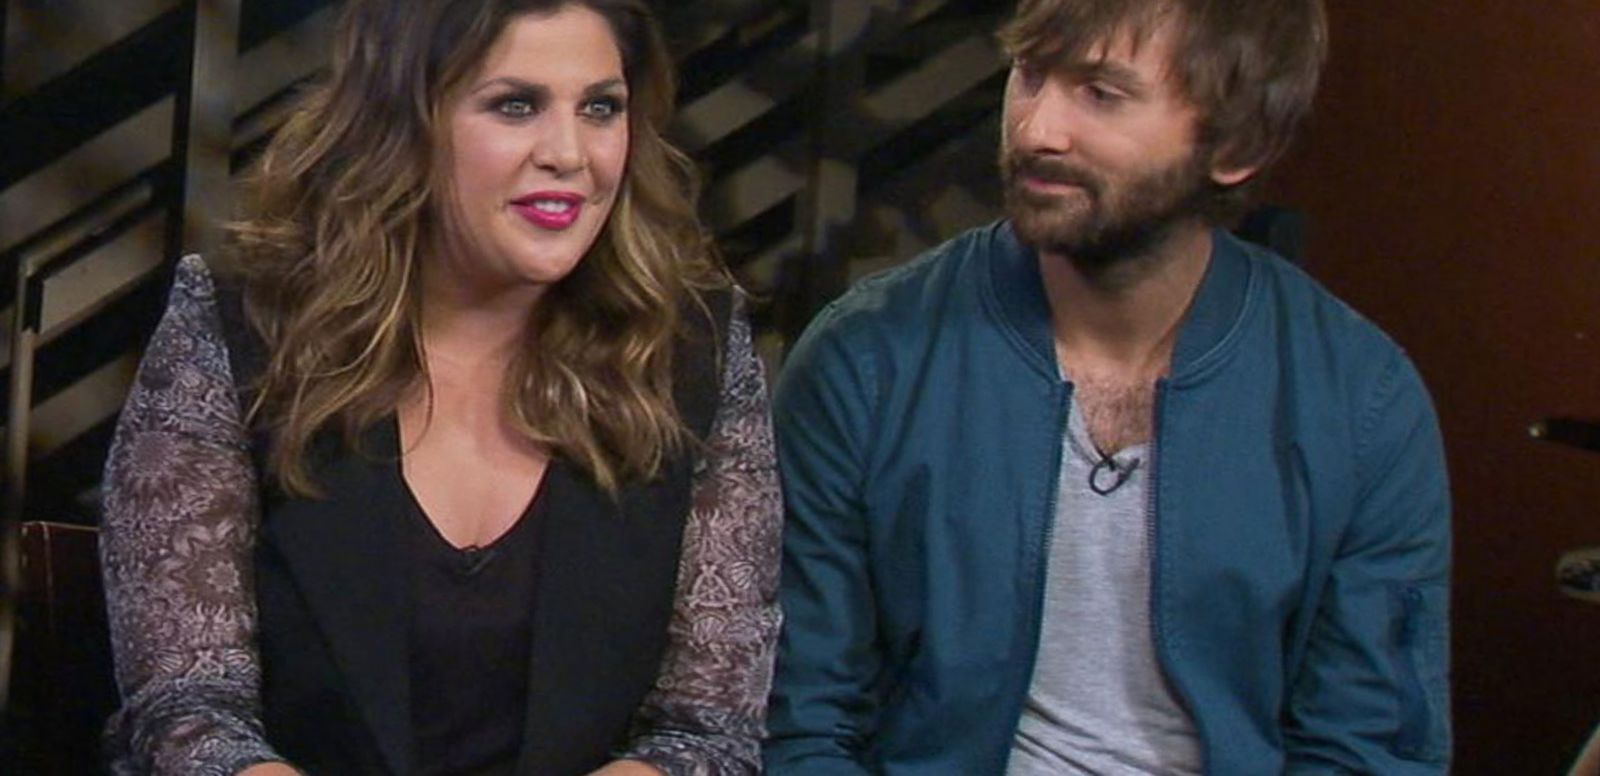 VIDEO: Lady Antebellum Announces They're Working on Their Next Record